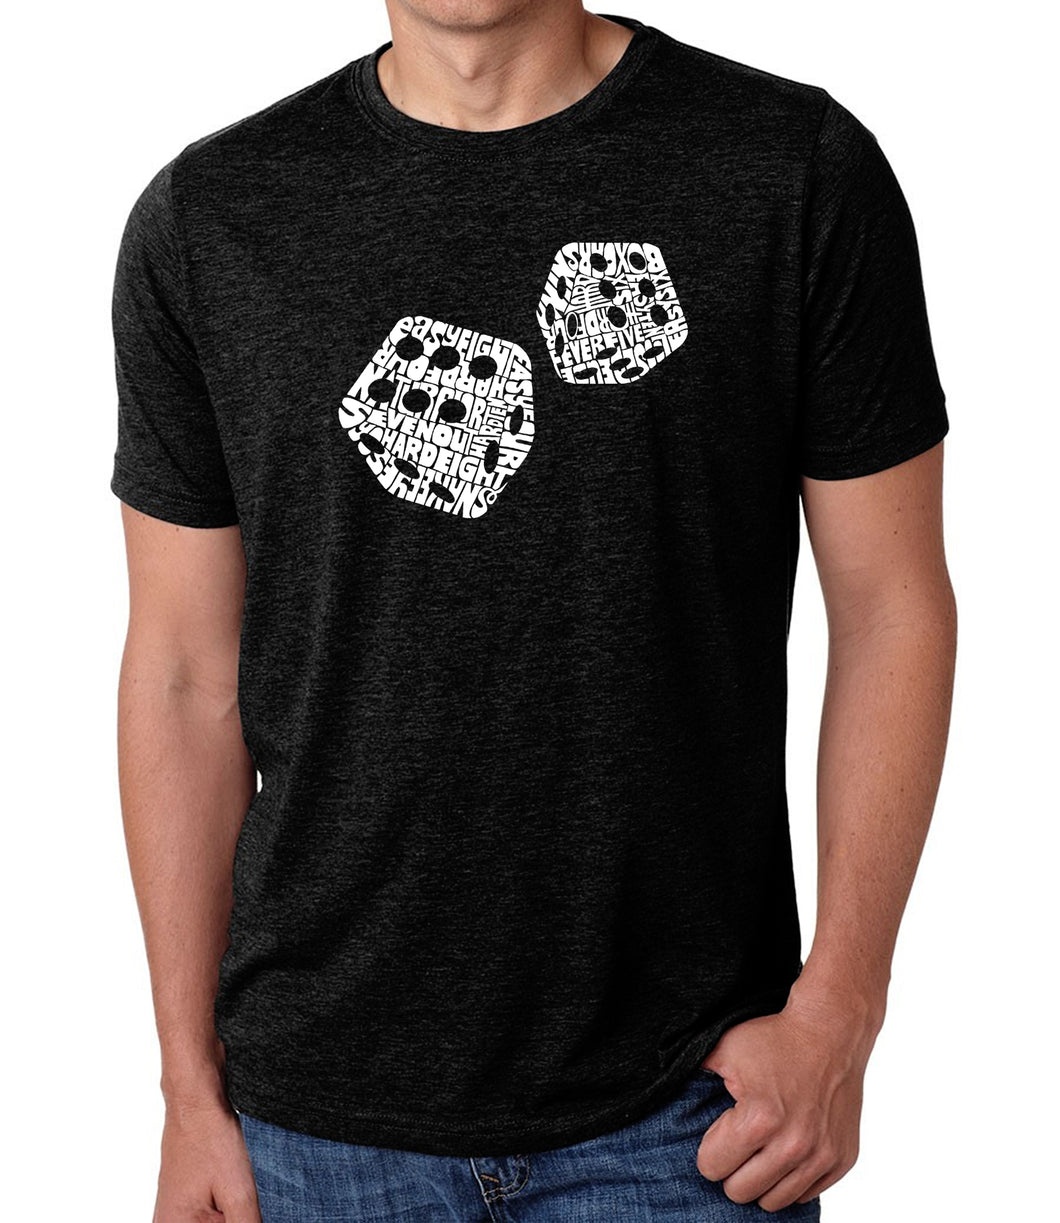 LA Pop Art Men's Premium Blend Word Art T-shirt - DIFFERENT ROLLS THROWN IN THE GAME OF CRAPS